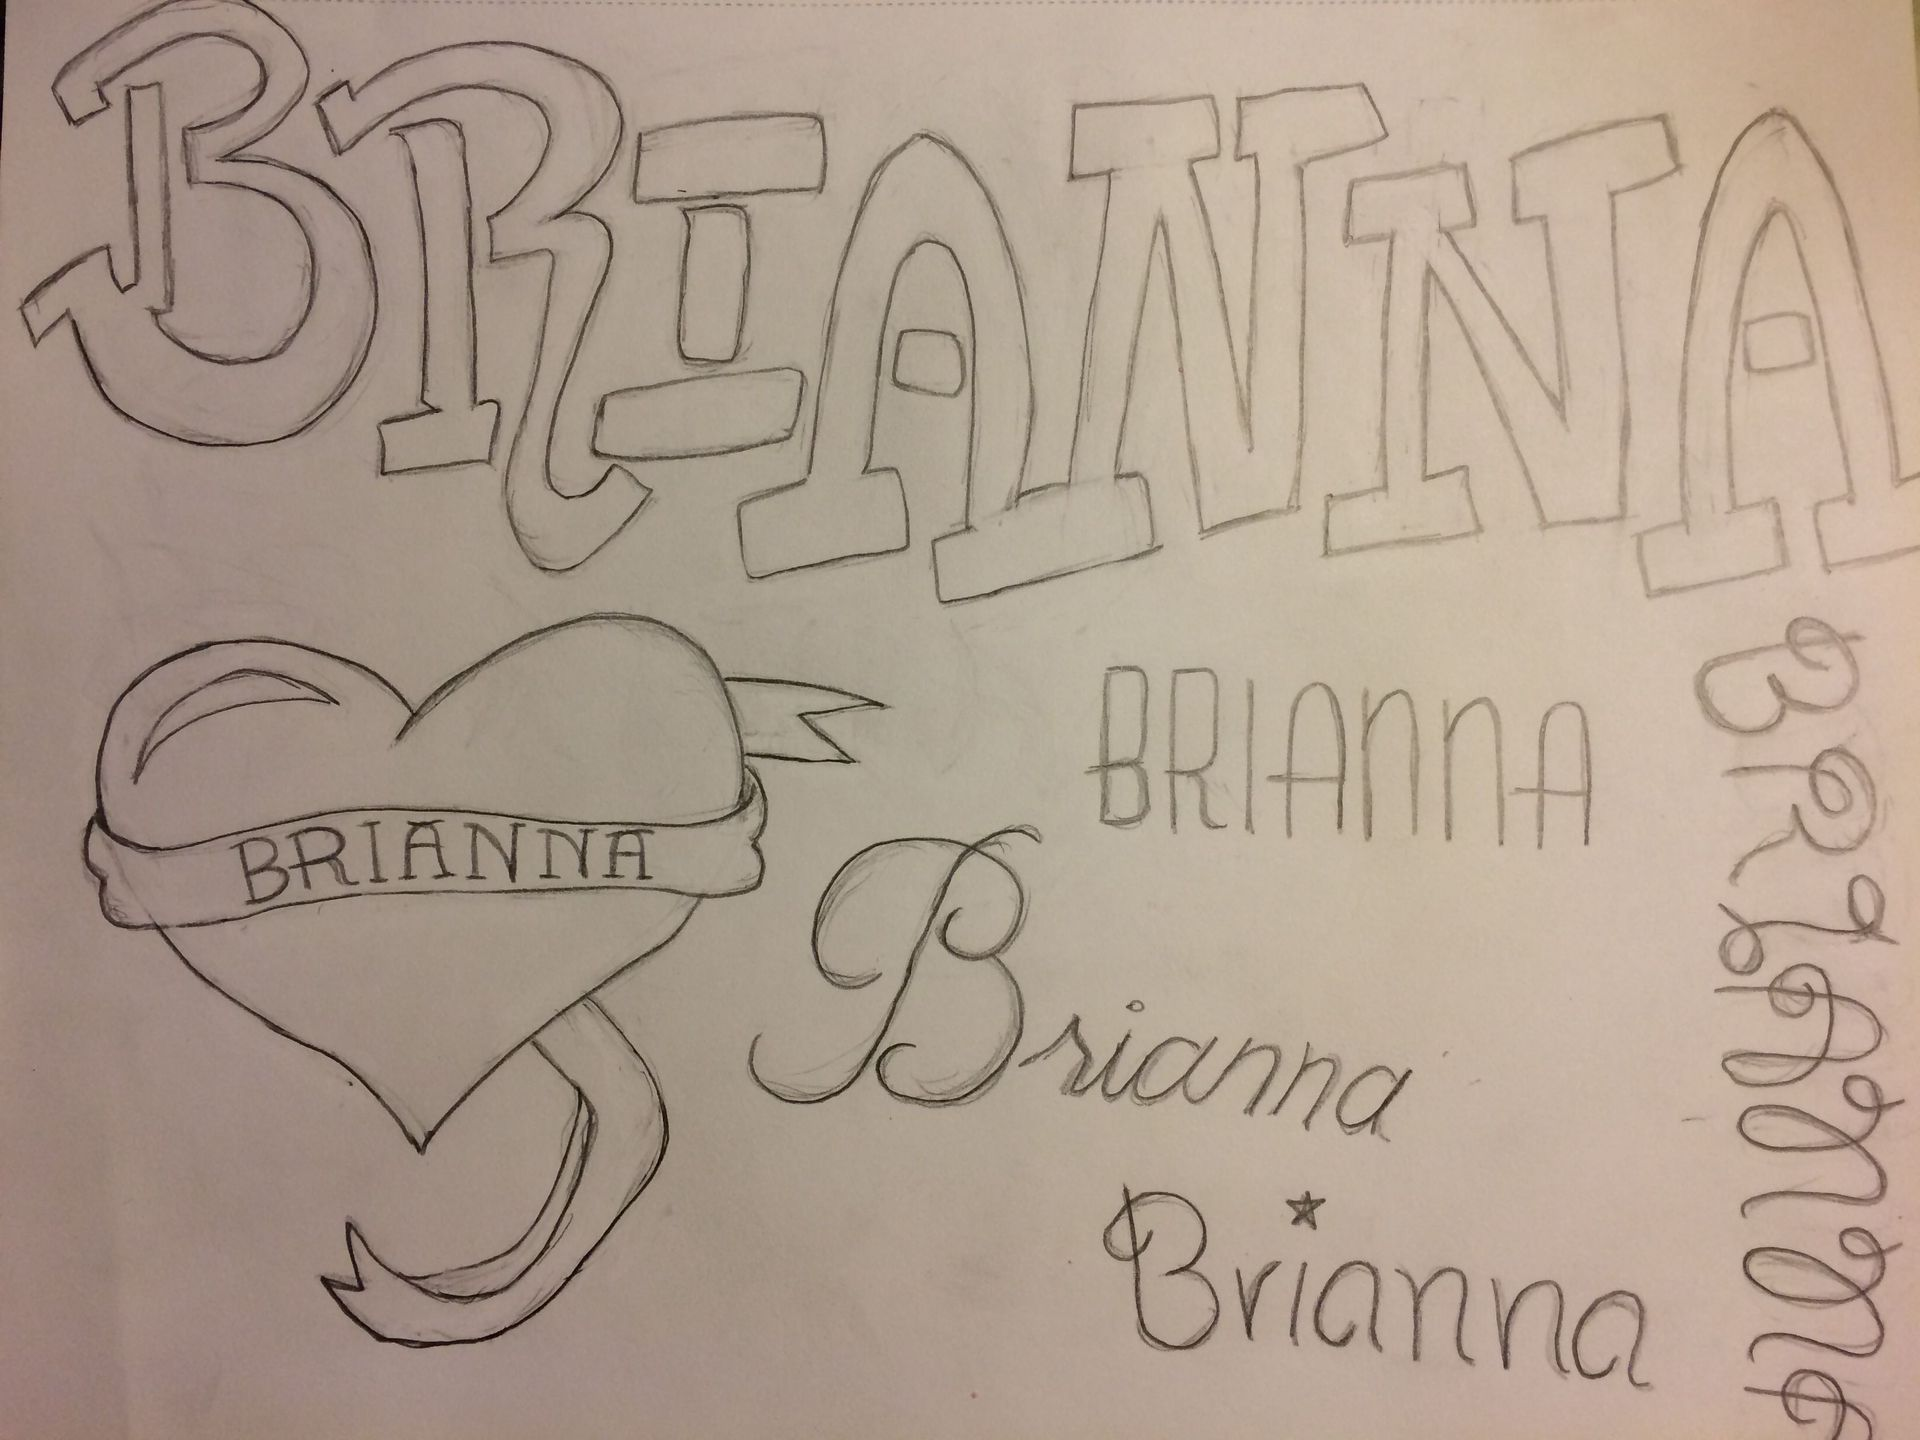 Uncategorized Name Sketches sketches 51816 name 2 brianna wattpad art draw drawing interactive llama requests sketch submit try yourself